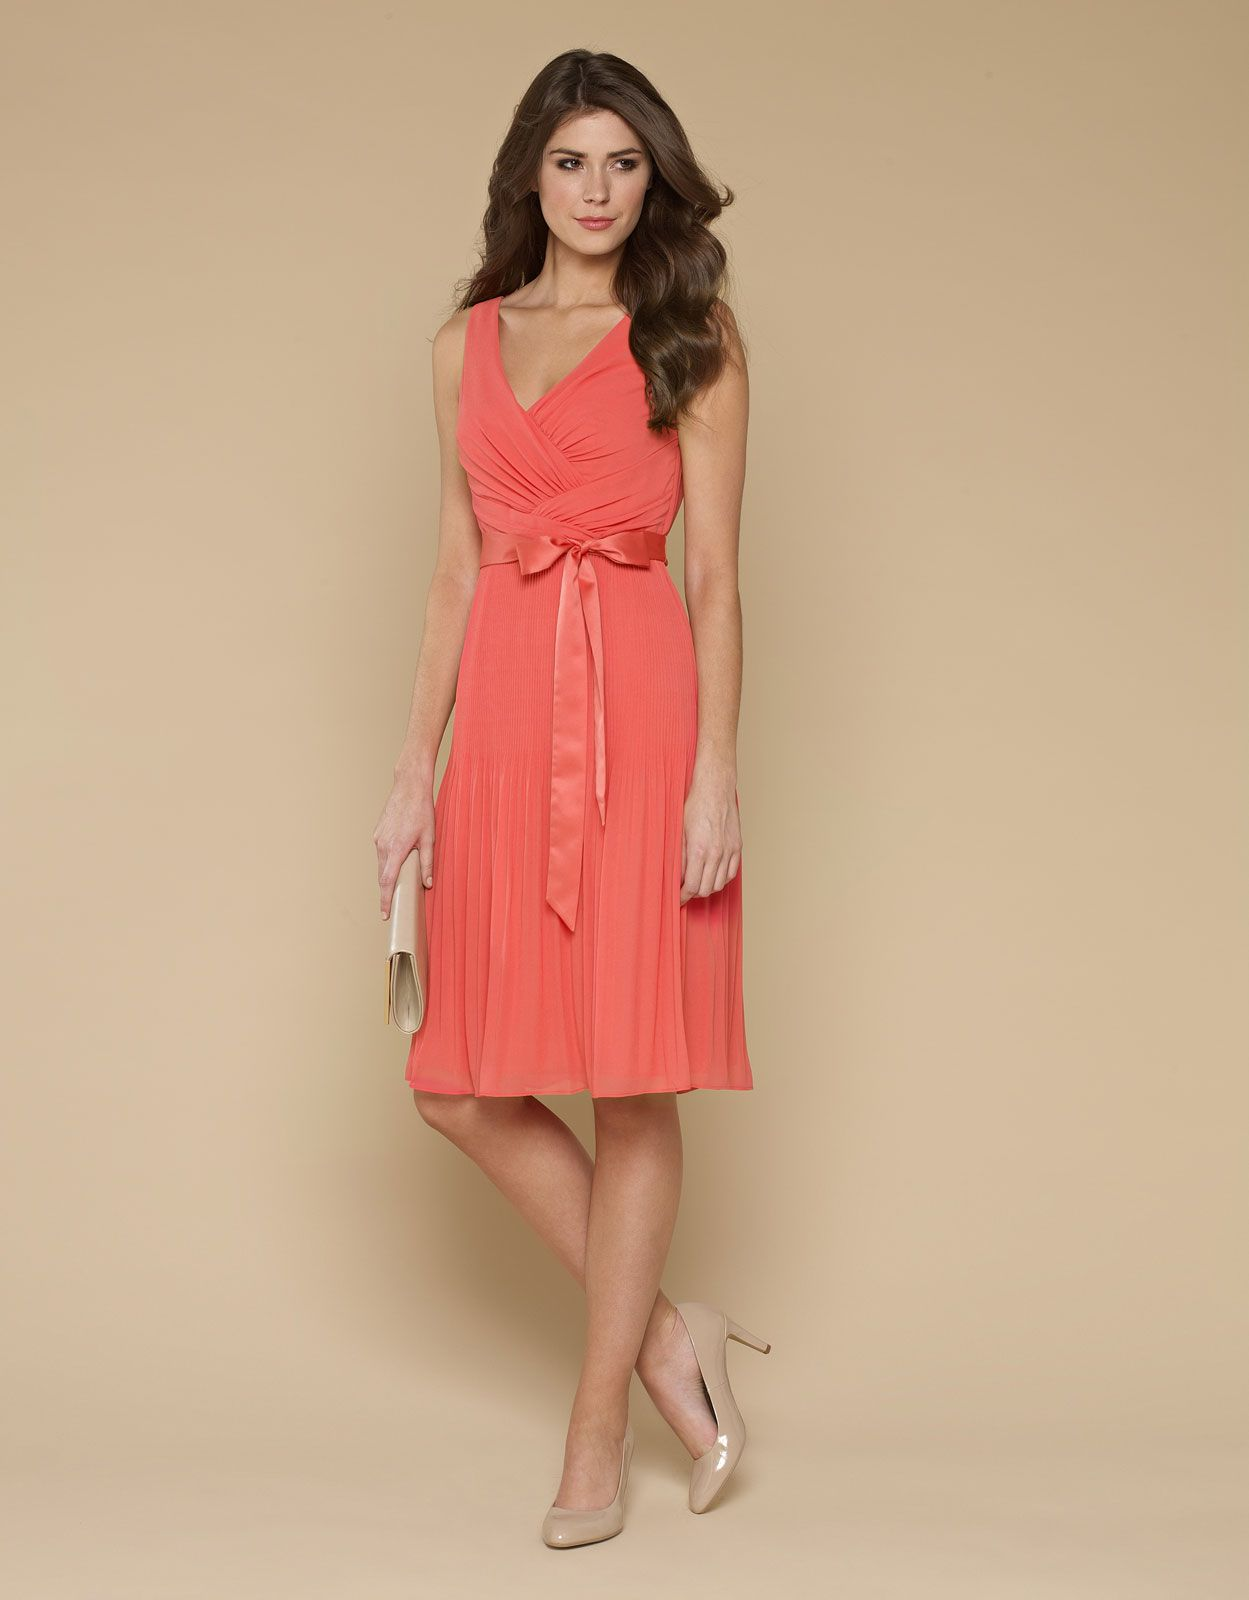 coral dresses for wedding Buy Day Dresses Ville Coral Pleat Dress Pink Monsoon